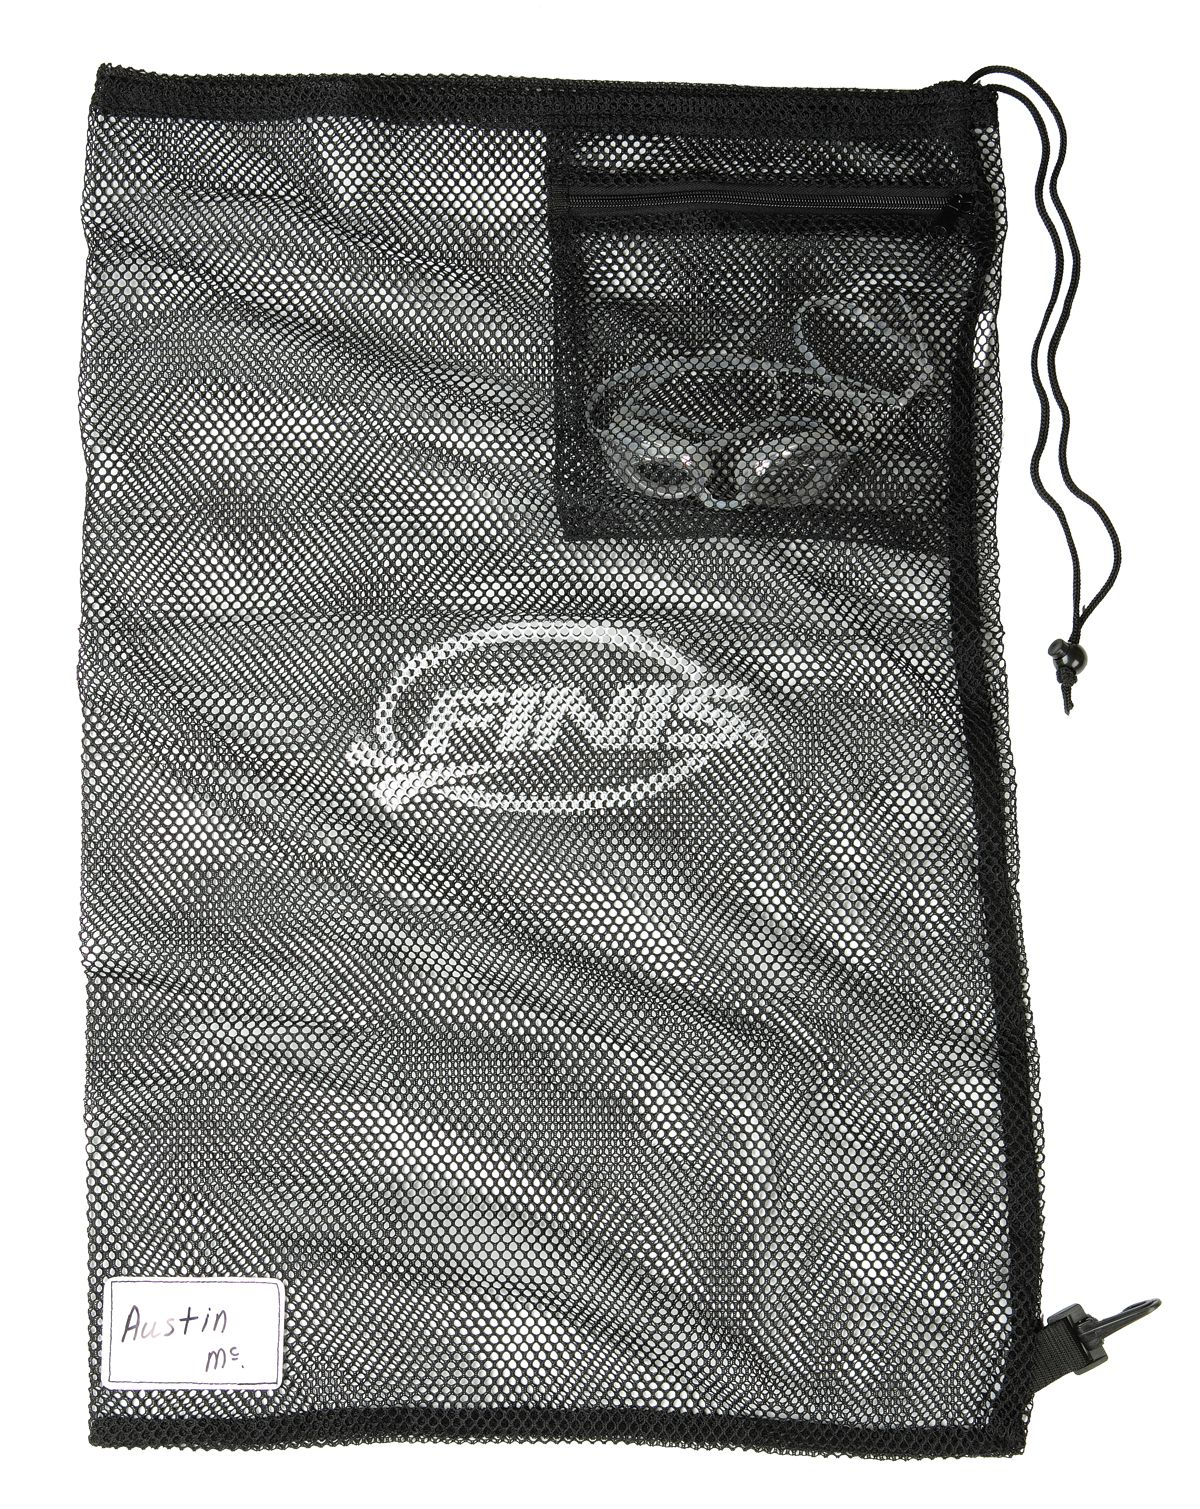 Mesh Gear Bag Black